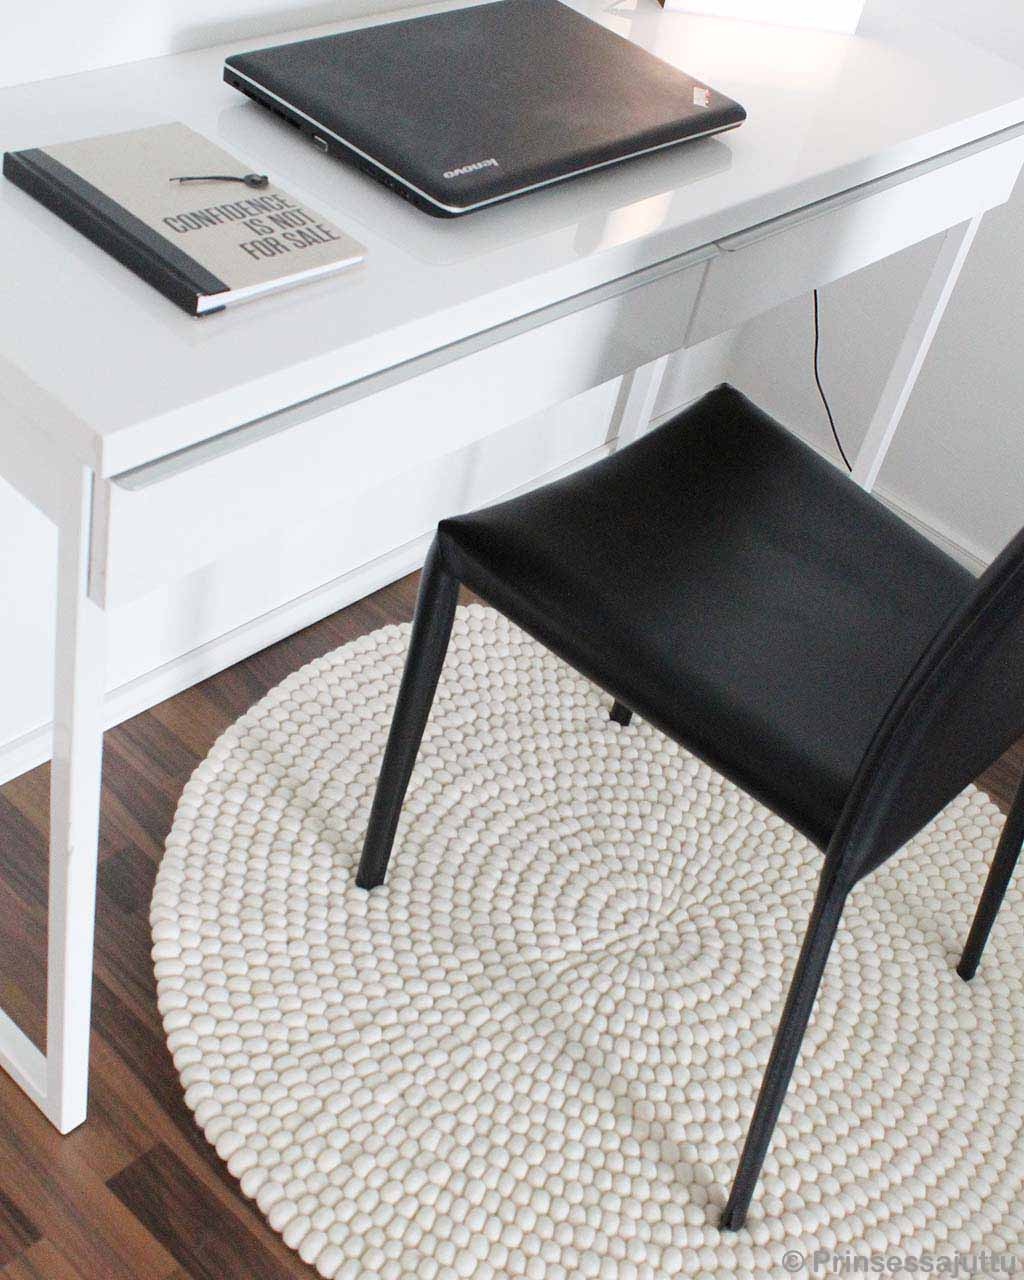 black chair laptop and notebook fresh living room rugs